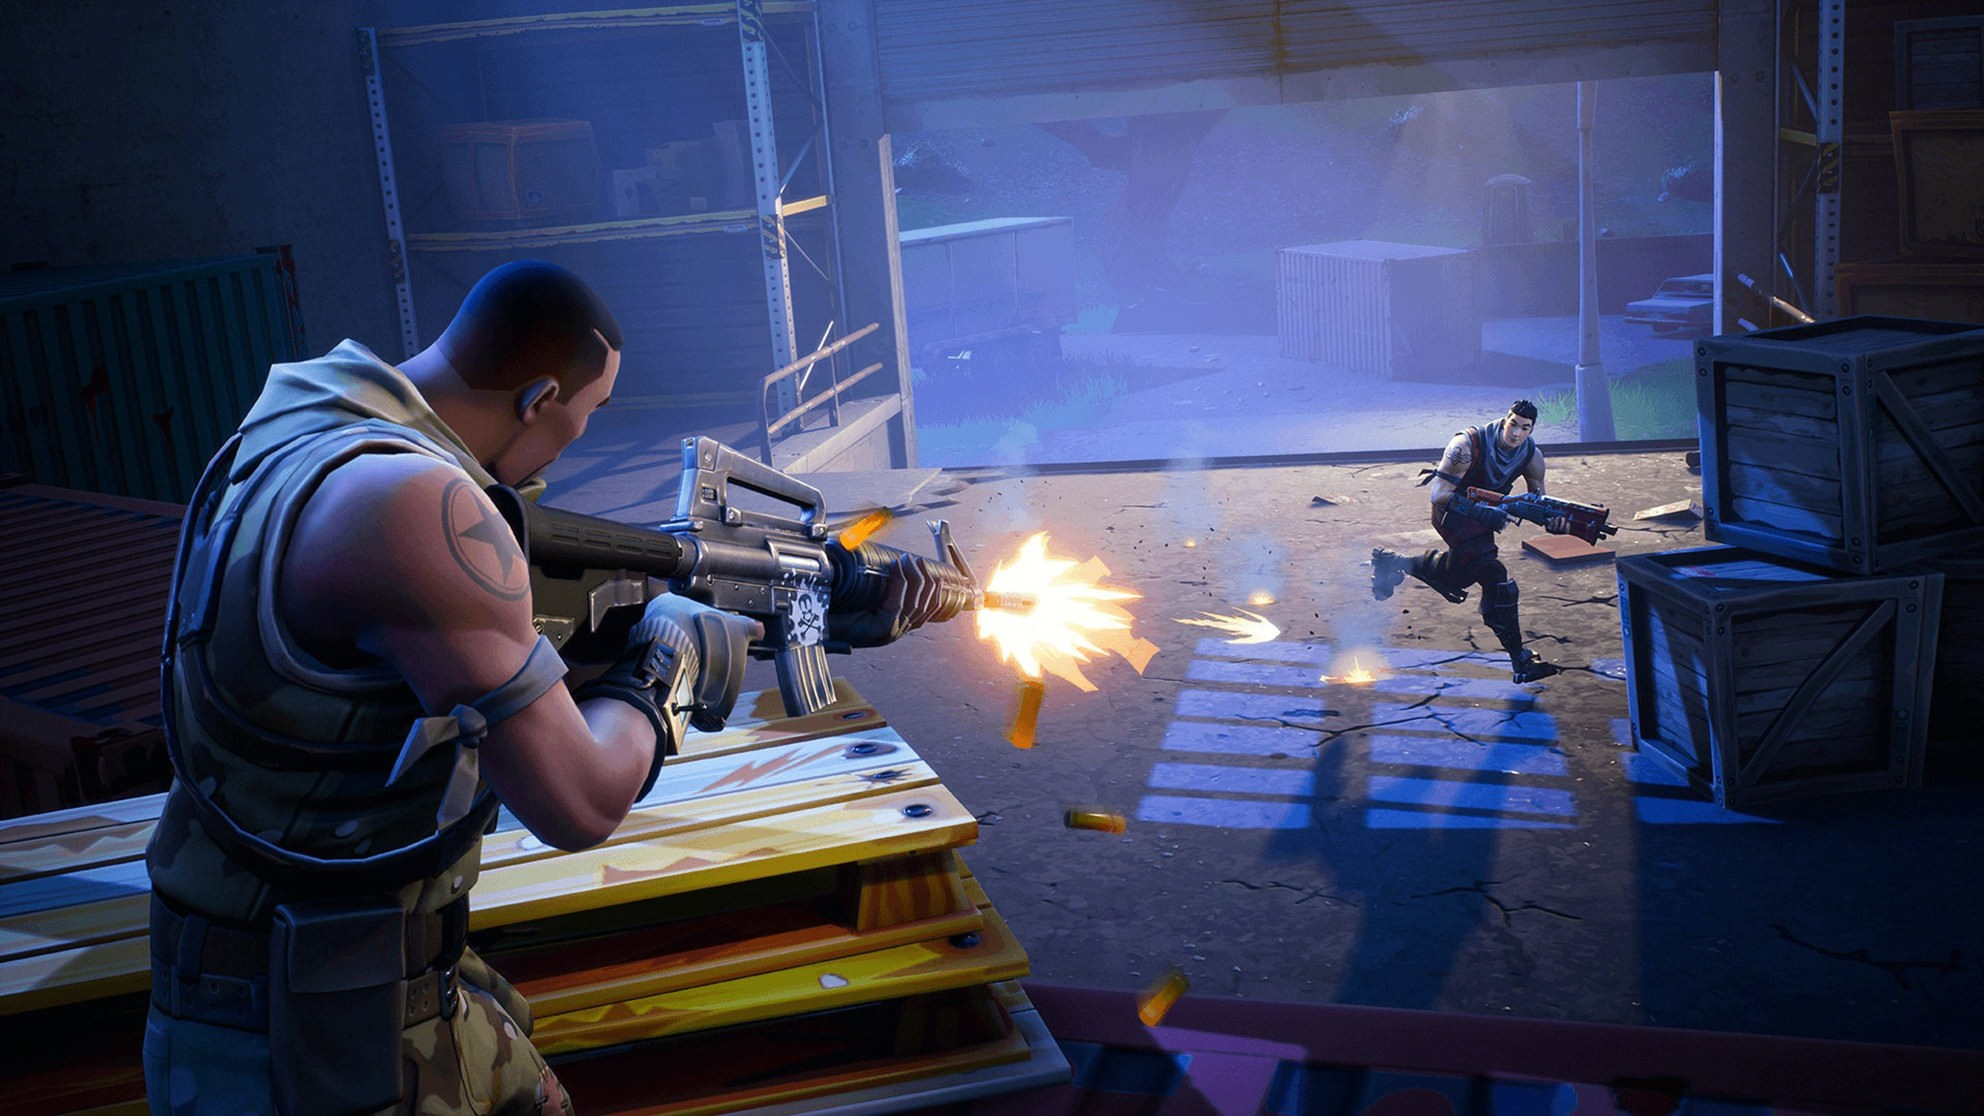 How to stream Fortnite Mobile from your iPhone